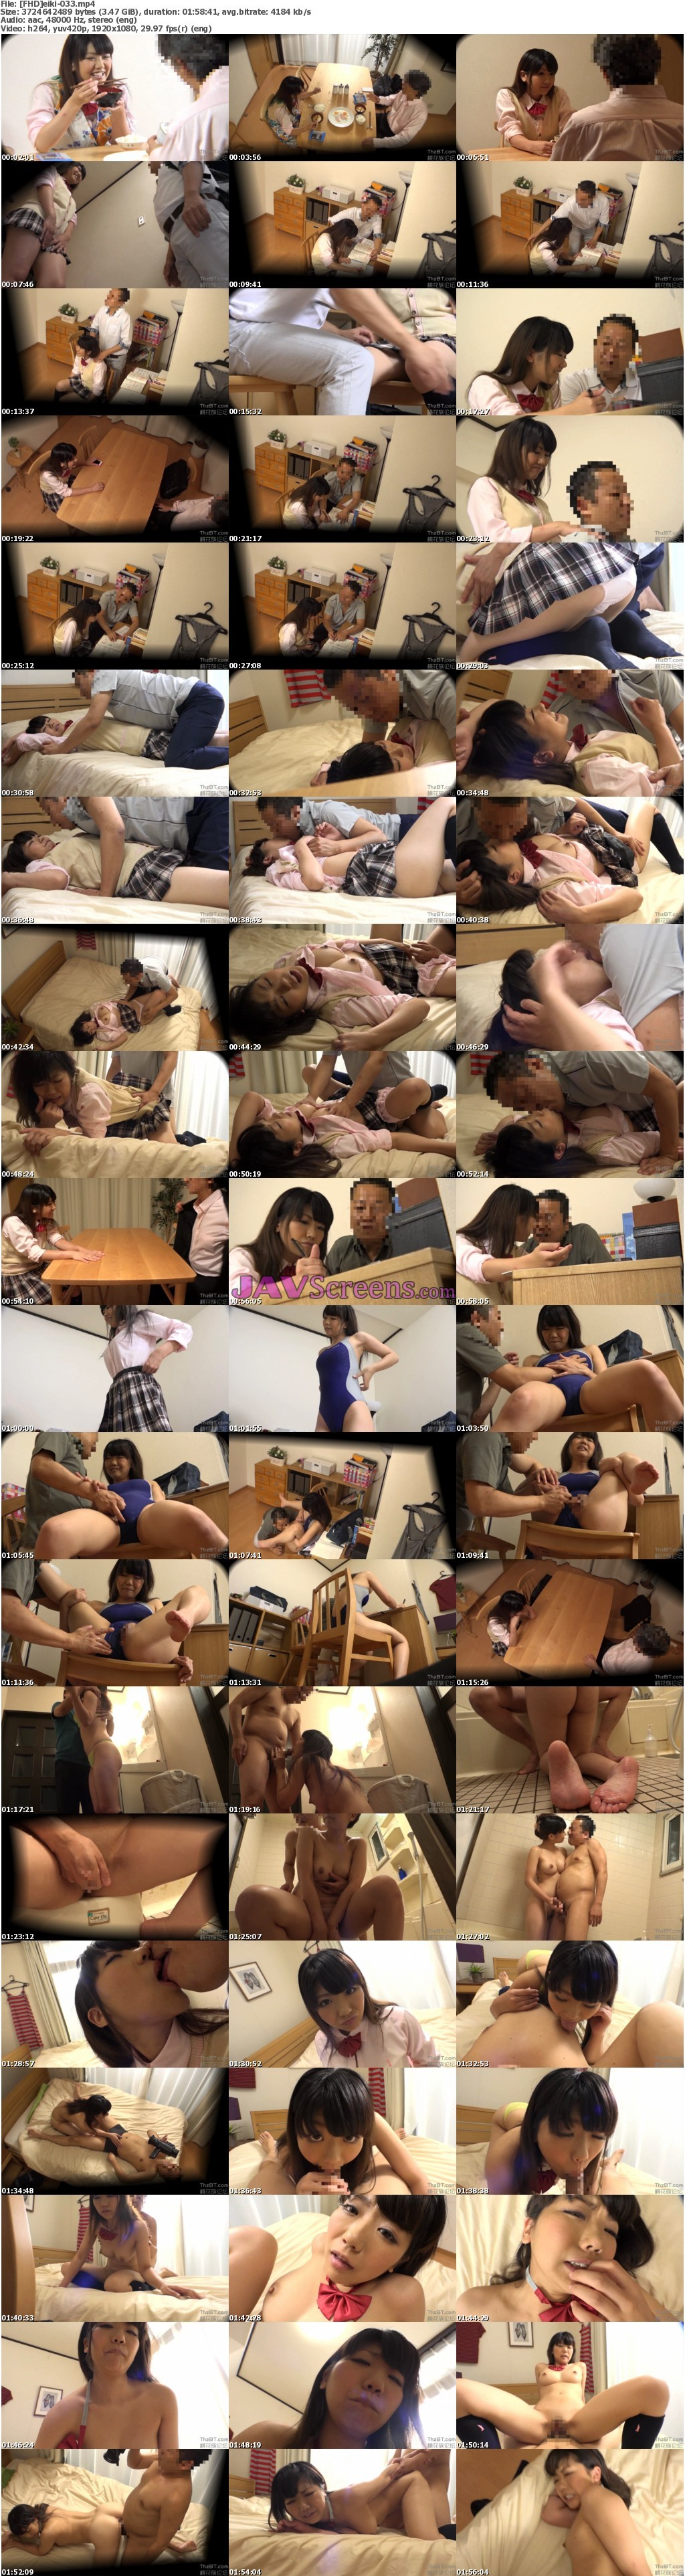 EIKI-033.jpg - JAV Screenshot